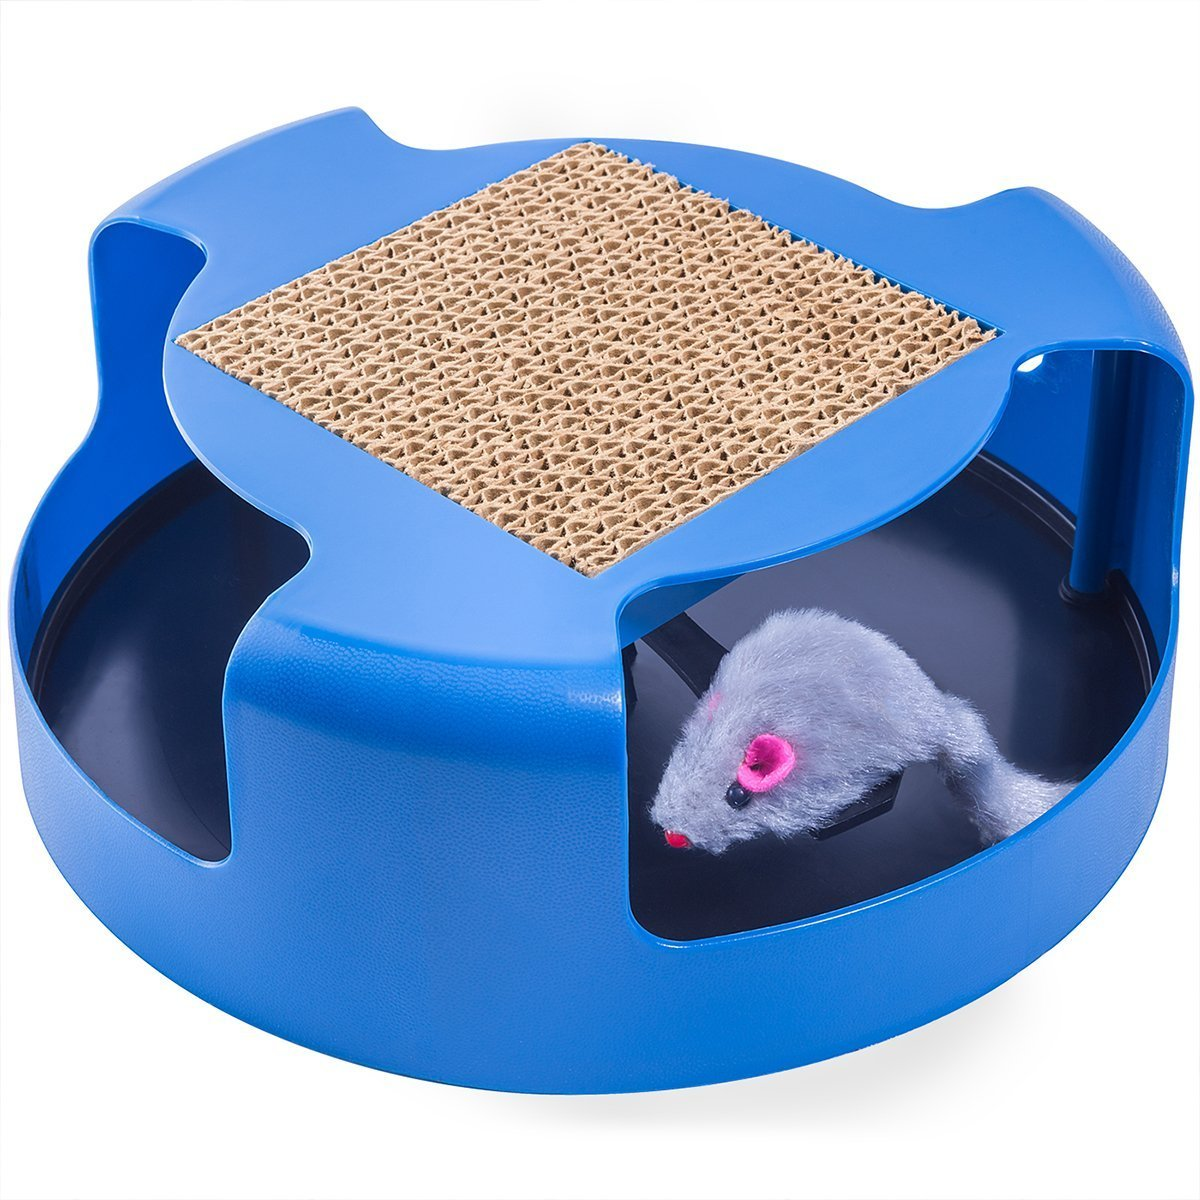 Smartcat Peek And Play Toy Box Crazy Cat Lady Supplies